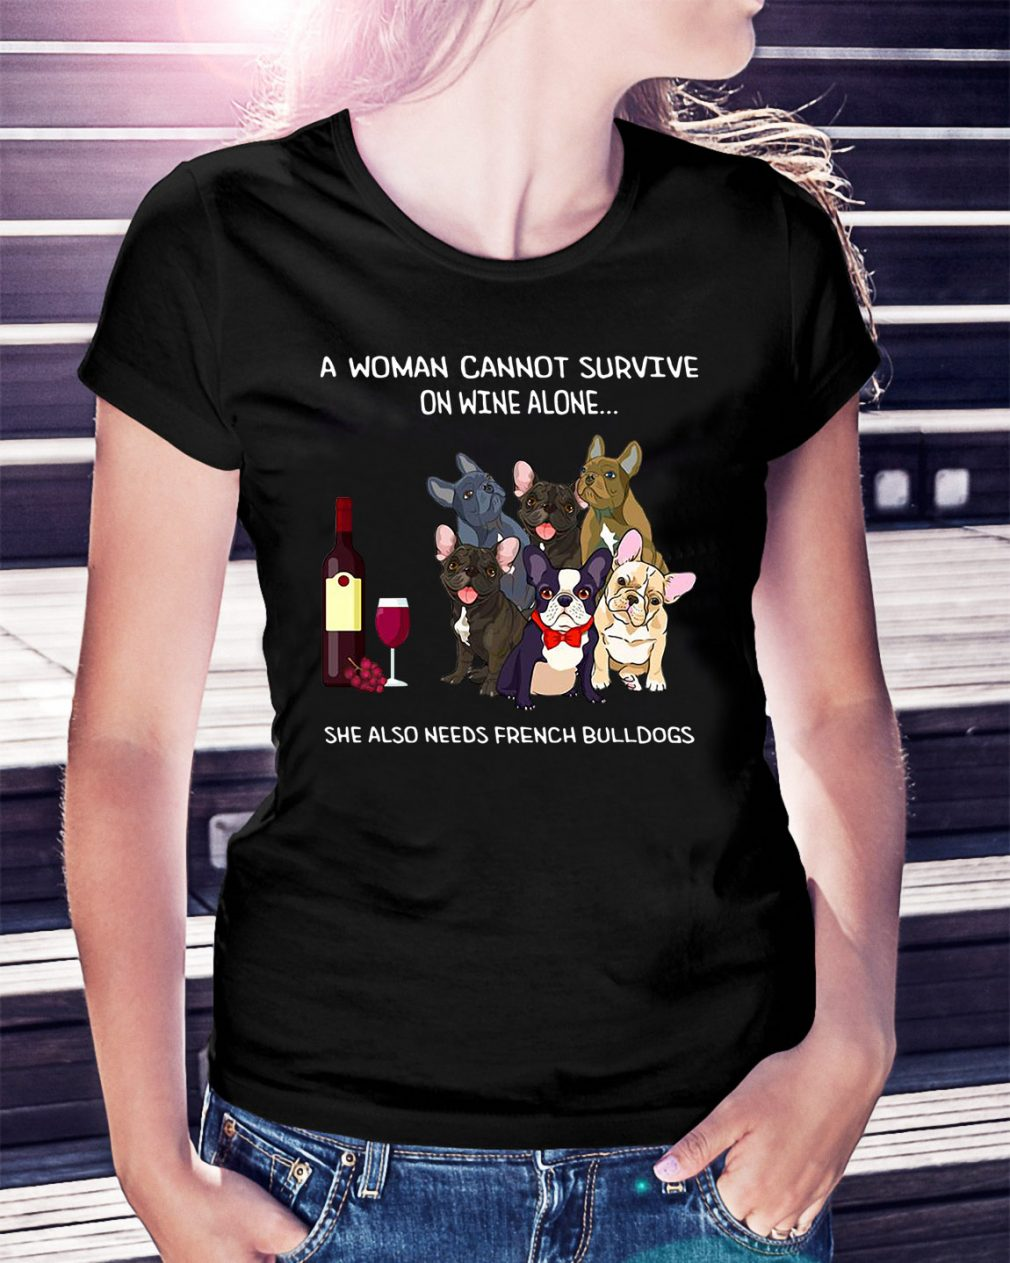 On wine alone she also needs French bulldogs Ladies Tee